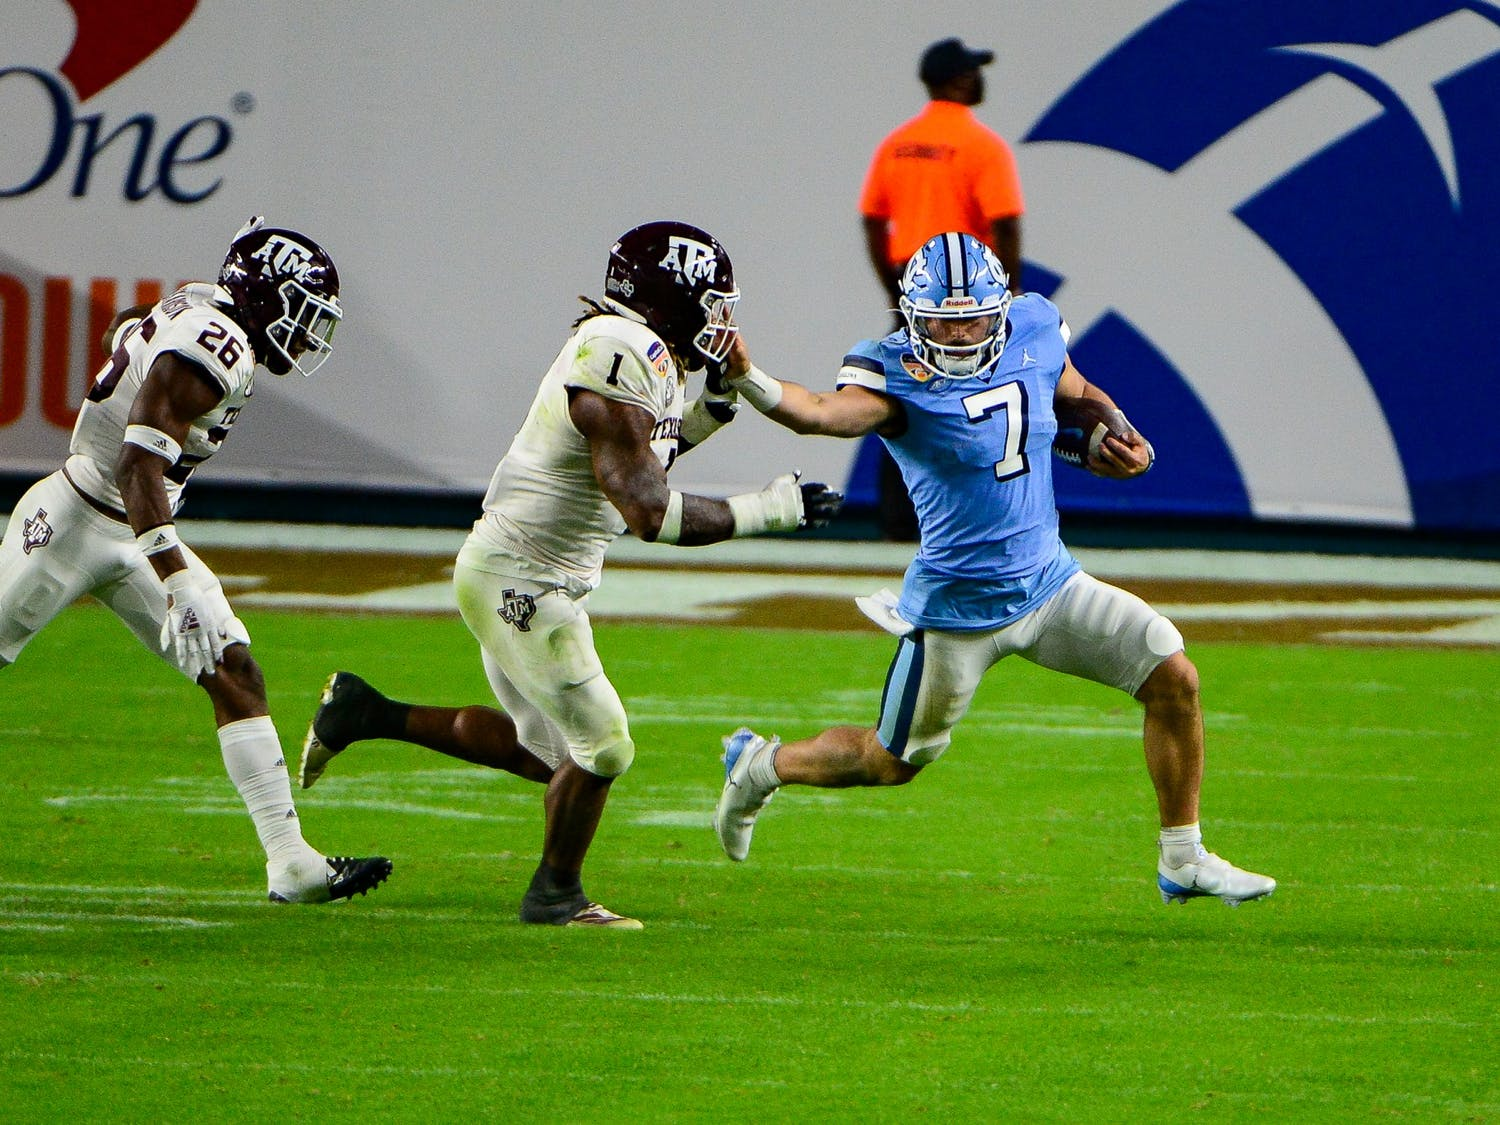 UNC sophomore quarterback Sam Howell (7) attempts to keep Texas A&M's senior linebacker Buddy Johnson (1) away during the Capital One Orange Bowl in Hard Rock Stadium on Saturday, Jan. 2, 2021. Texas A&M beat UNC 41-27.